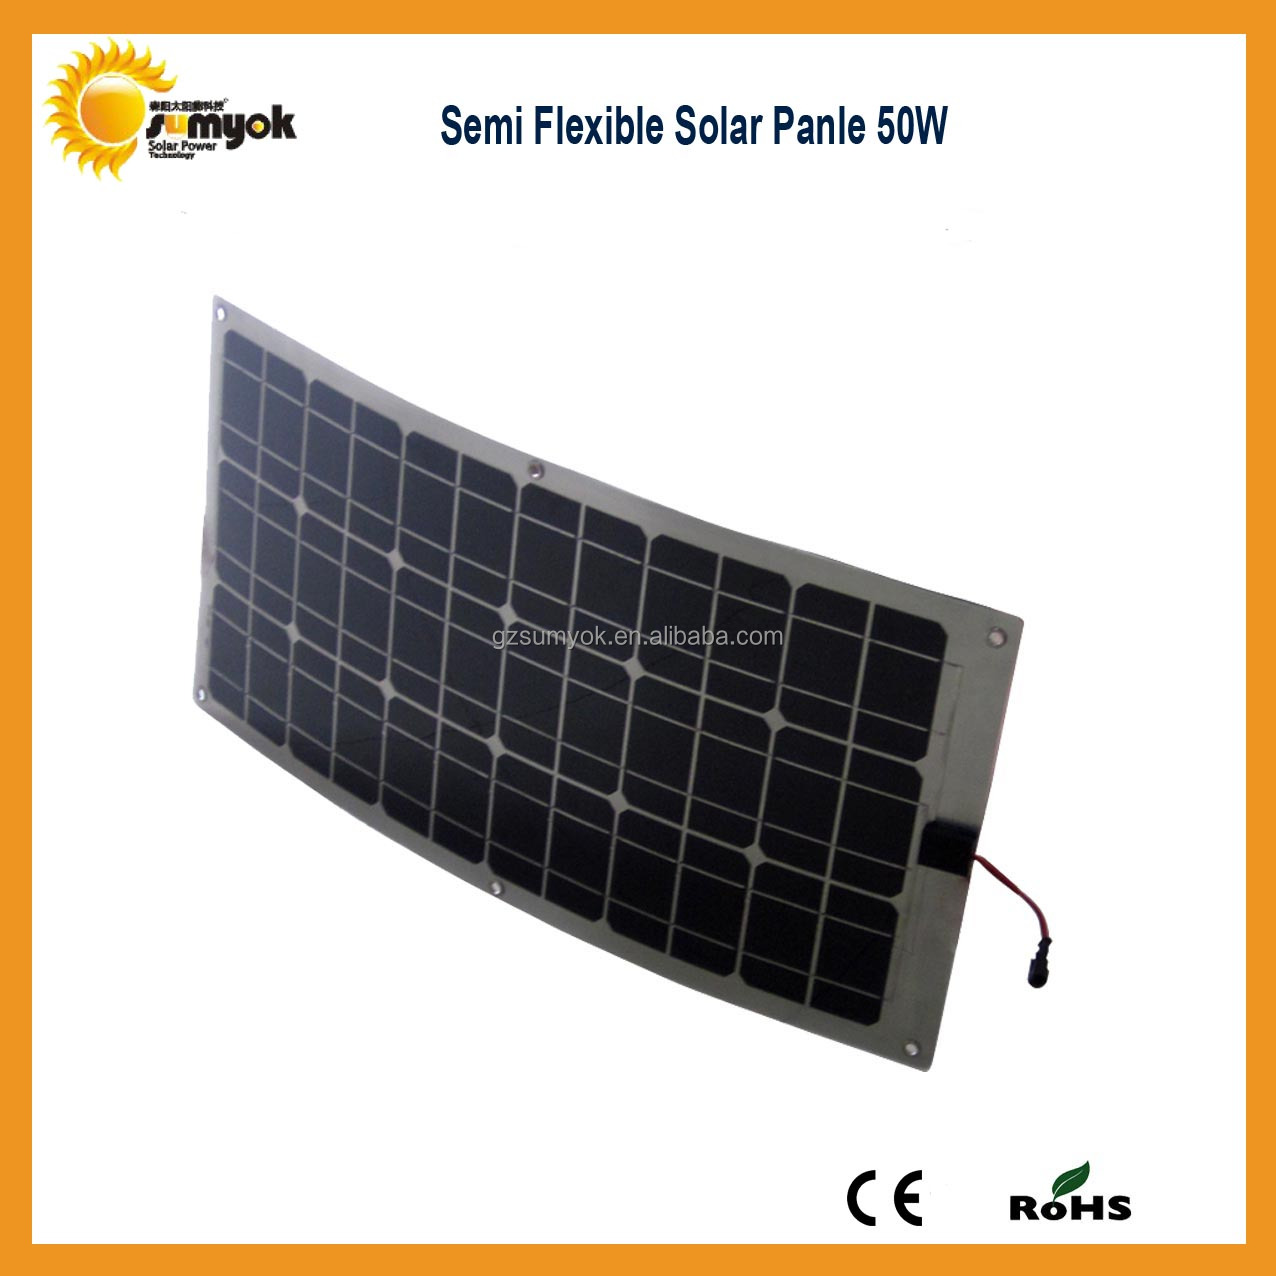 SYK50-18MFX flexibel solar panel with aluminum and ETFE flexible solar panel for wholesale 50W